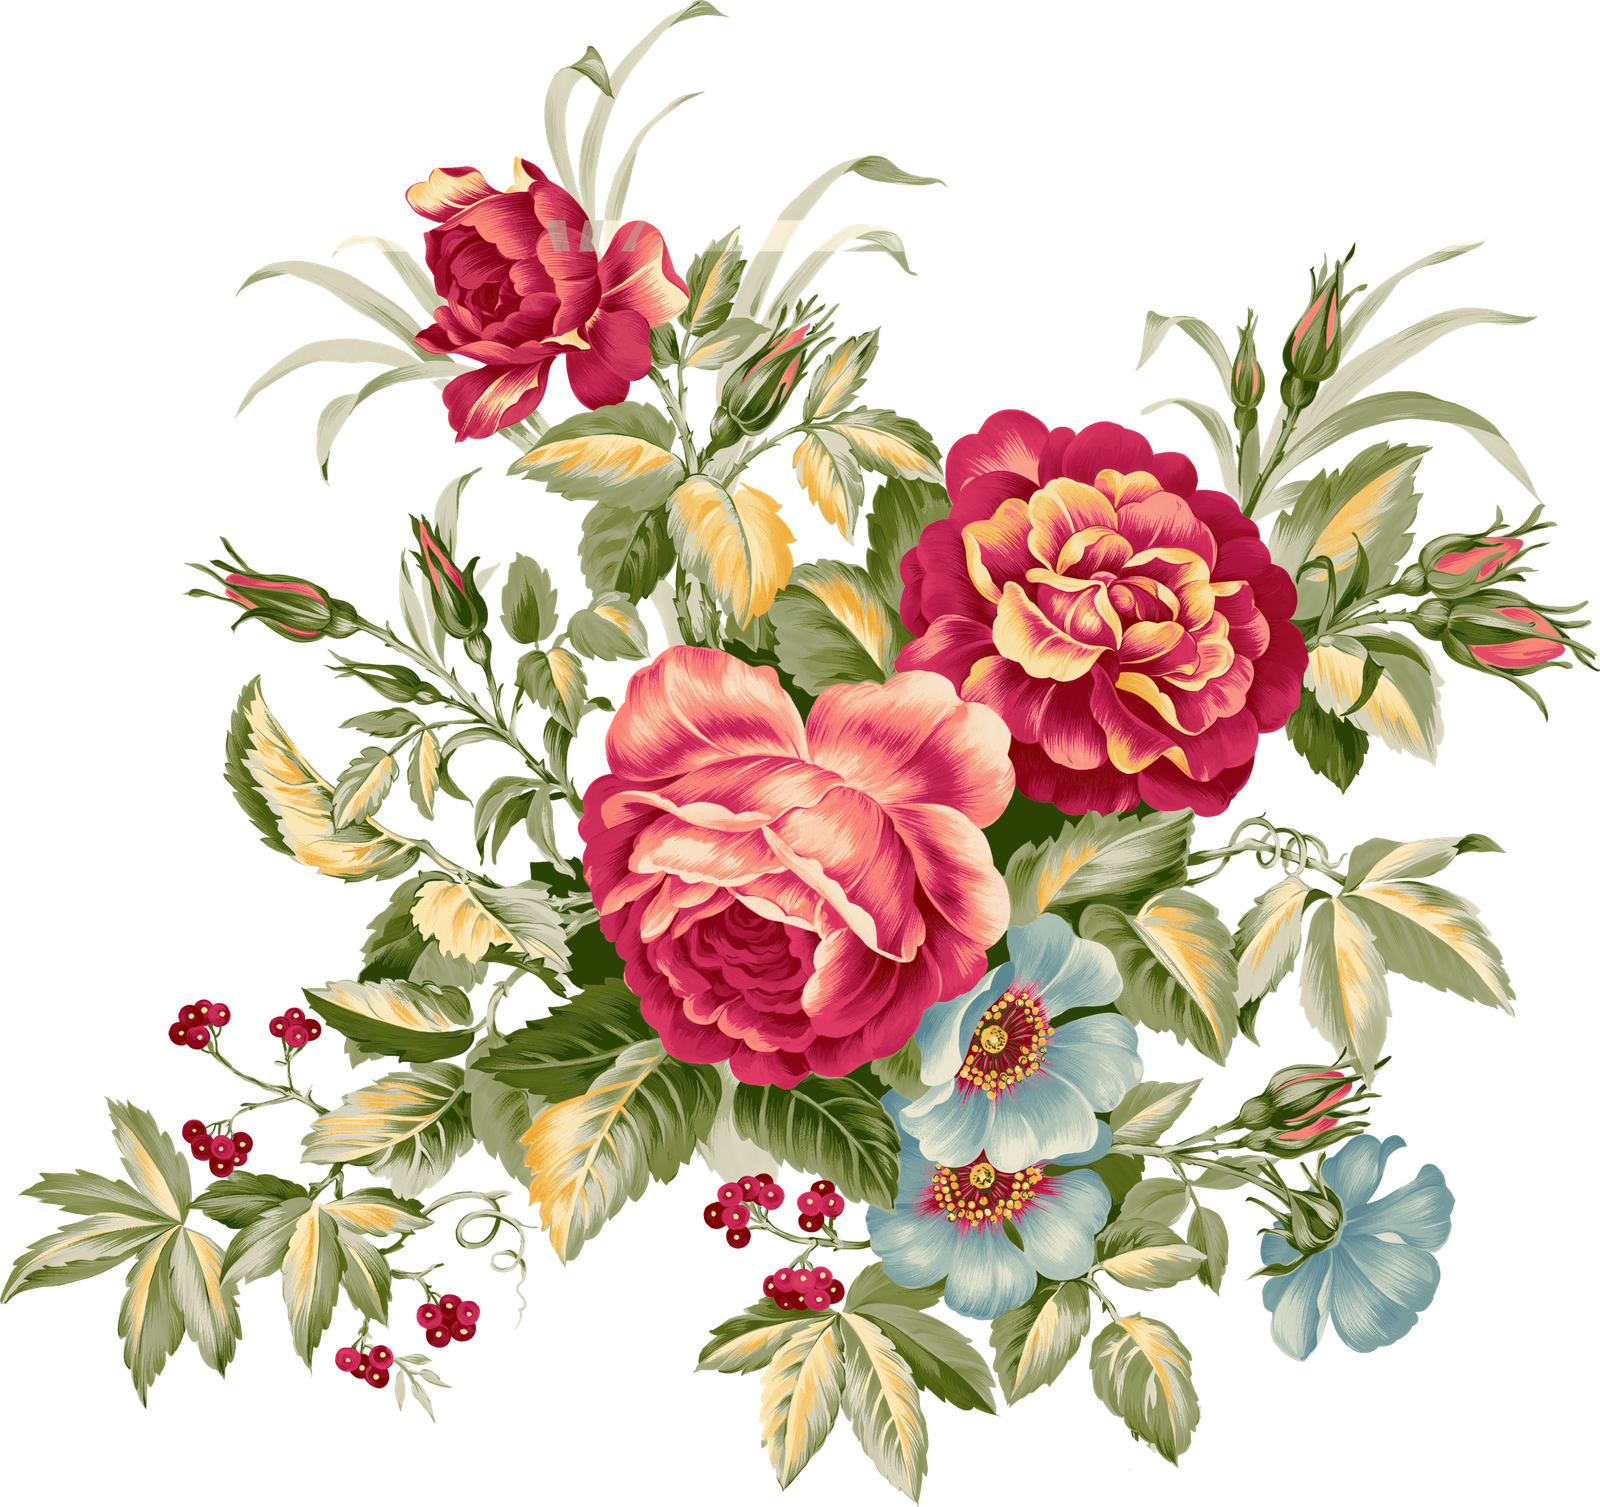 Chinese flower png. Bbf fd d b